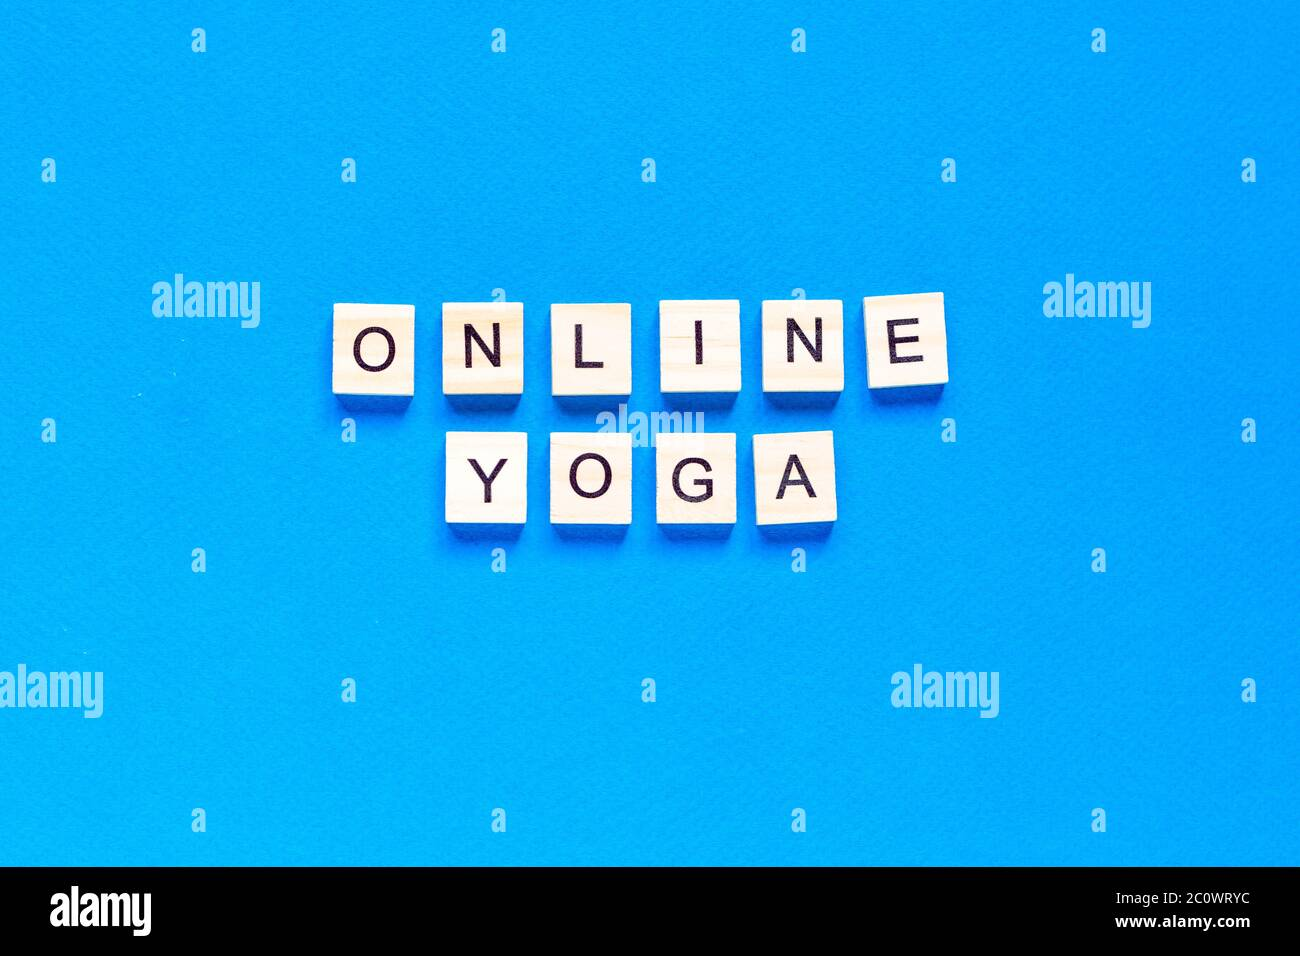 The word ONLINE YOGA written in wooden letterpress type on a blue background. top view. flat layout. Stock Photo